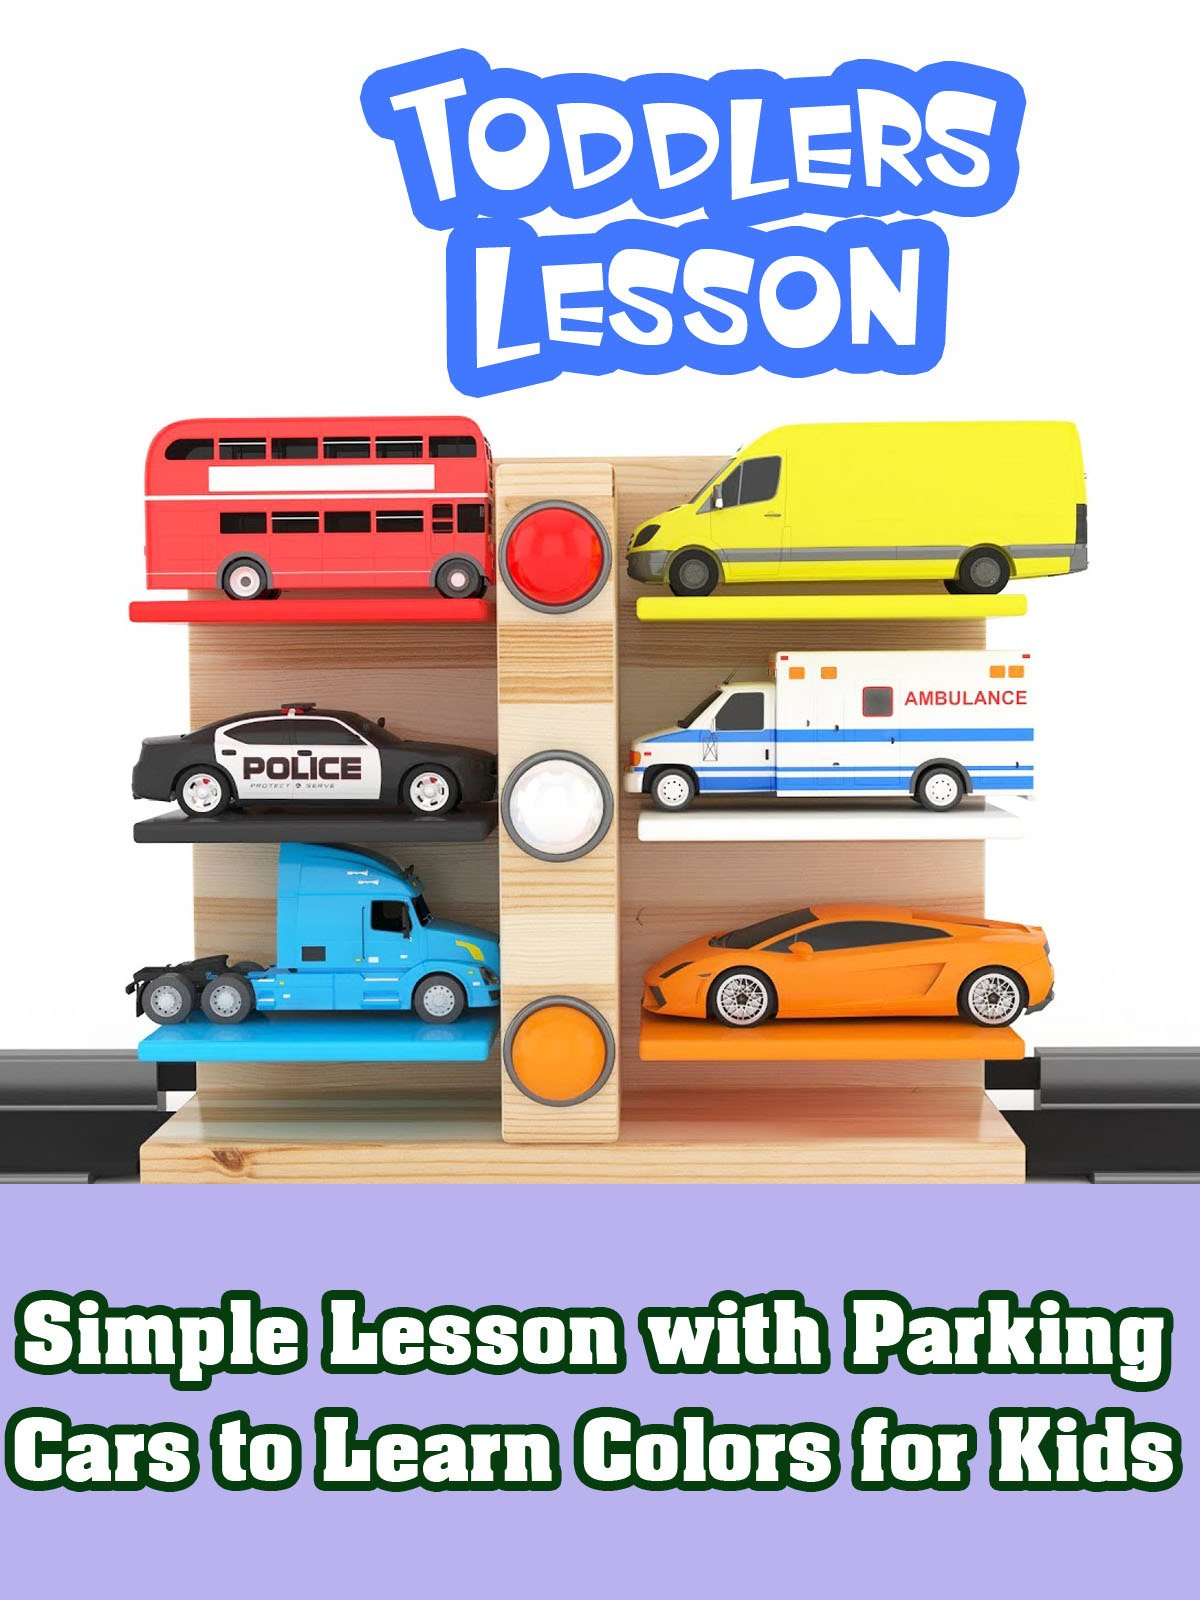 Simple Lesson with Parking Cars to Learn Colors for Kids